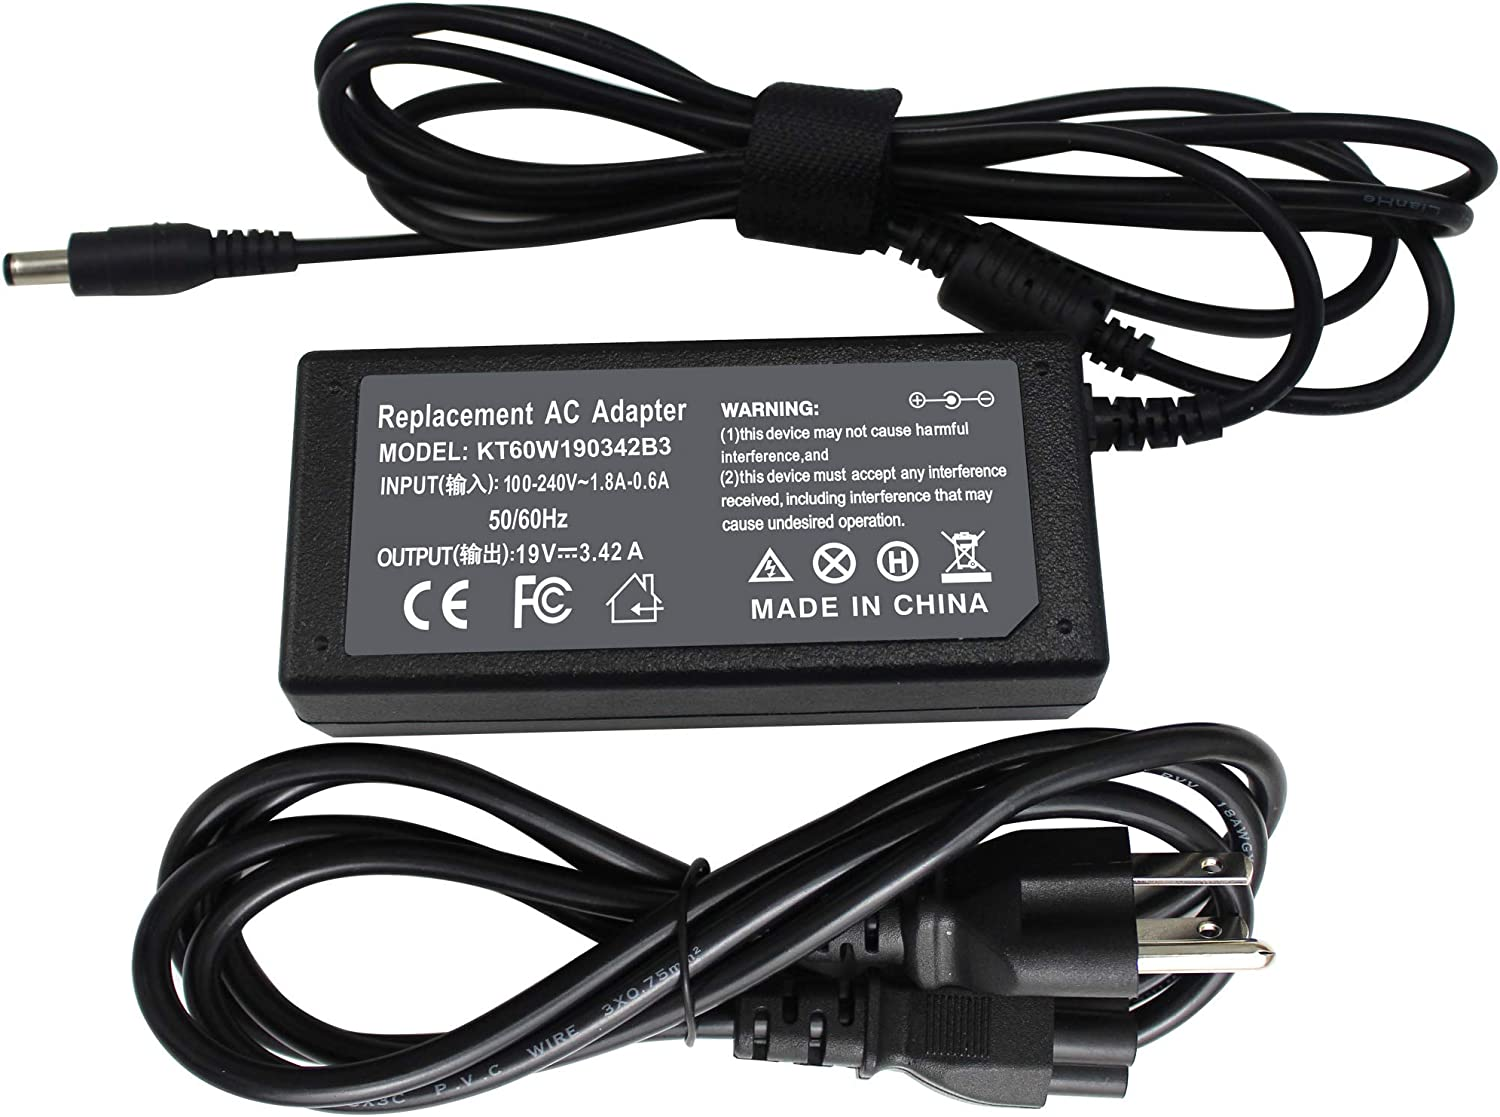 LNOCCIY 19V 3.42A AC Adapter Charger Power Supply Cord for Toshiba pa3714u-1aca pa3467u-1aca pa3917u-1aca Satellite C855-S5107 C855-S5111 C855-S5122 C55-B5300 C55-B5353 C55D-A5108 C55D-A5146